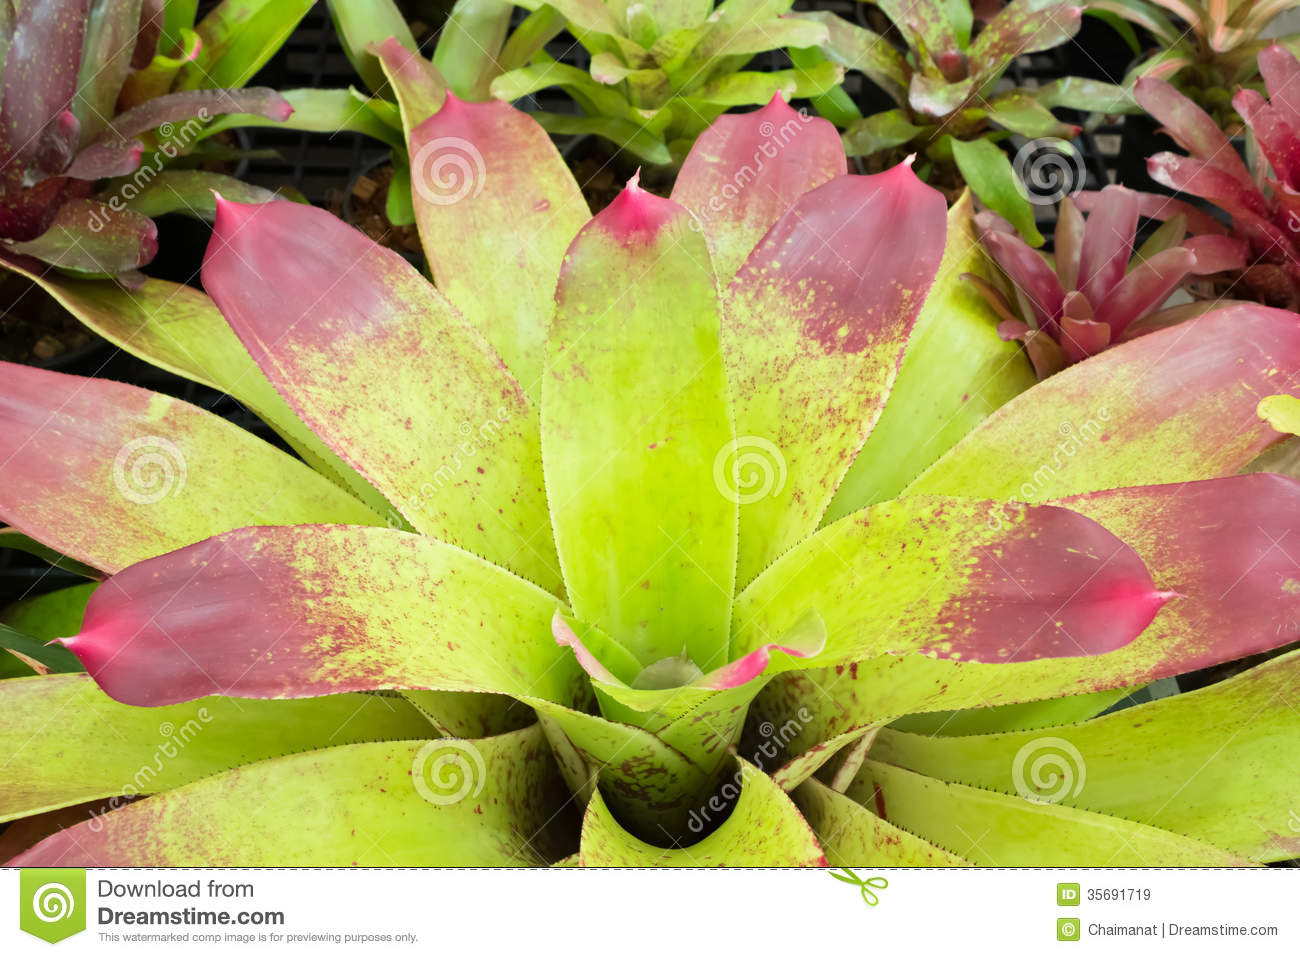 Bromeliad Royalty Free Stock Images.